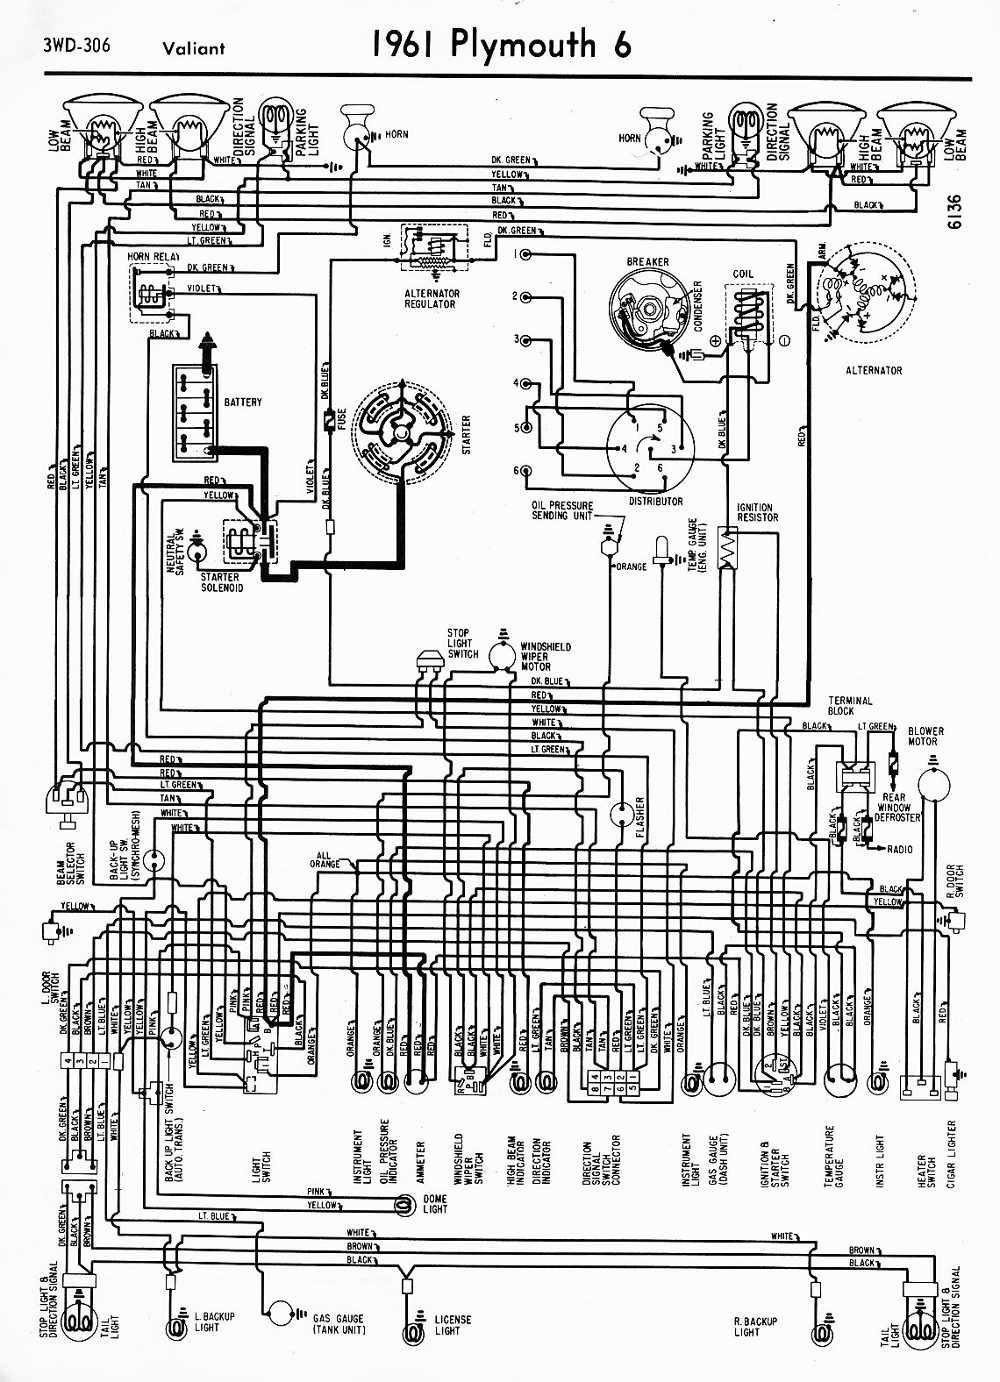 wiring diagrams of 1961 plymouth 6 valiant?t\\\=1508746019 1947 plymouth wiring diagram 1947 wiring diagrams instruction 1954 plymouth belvedere wiring diagram at eliteediting.co